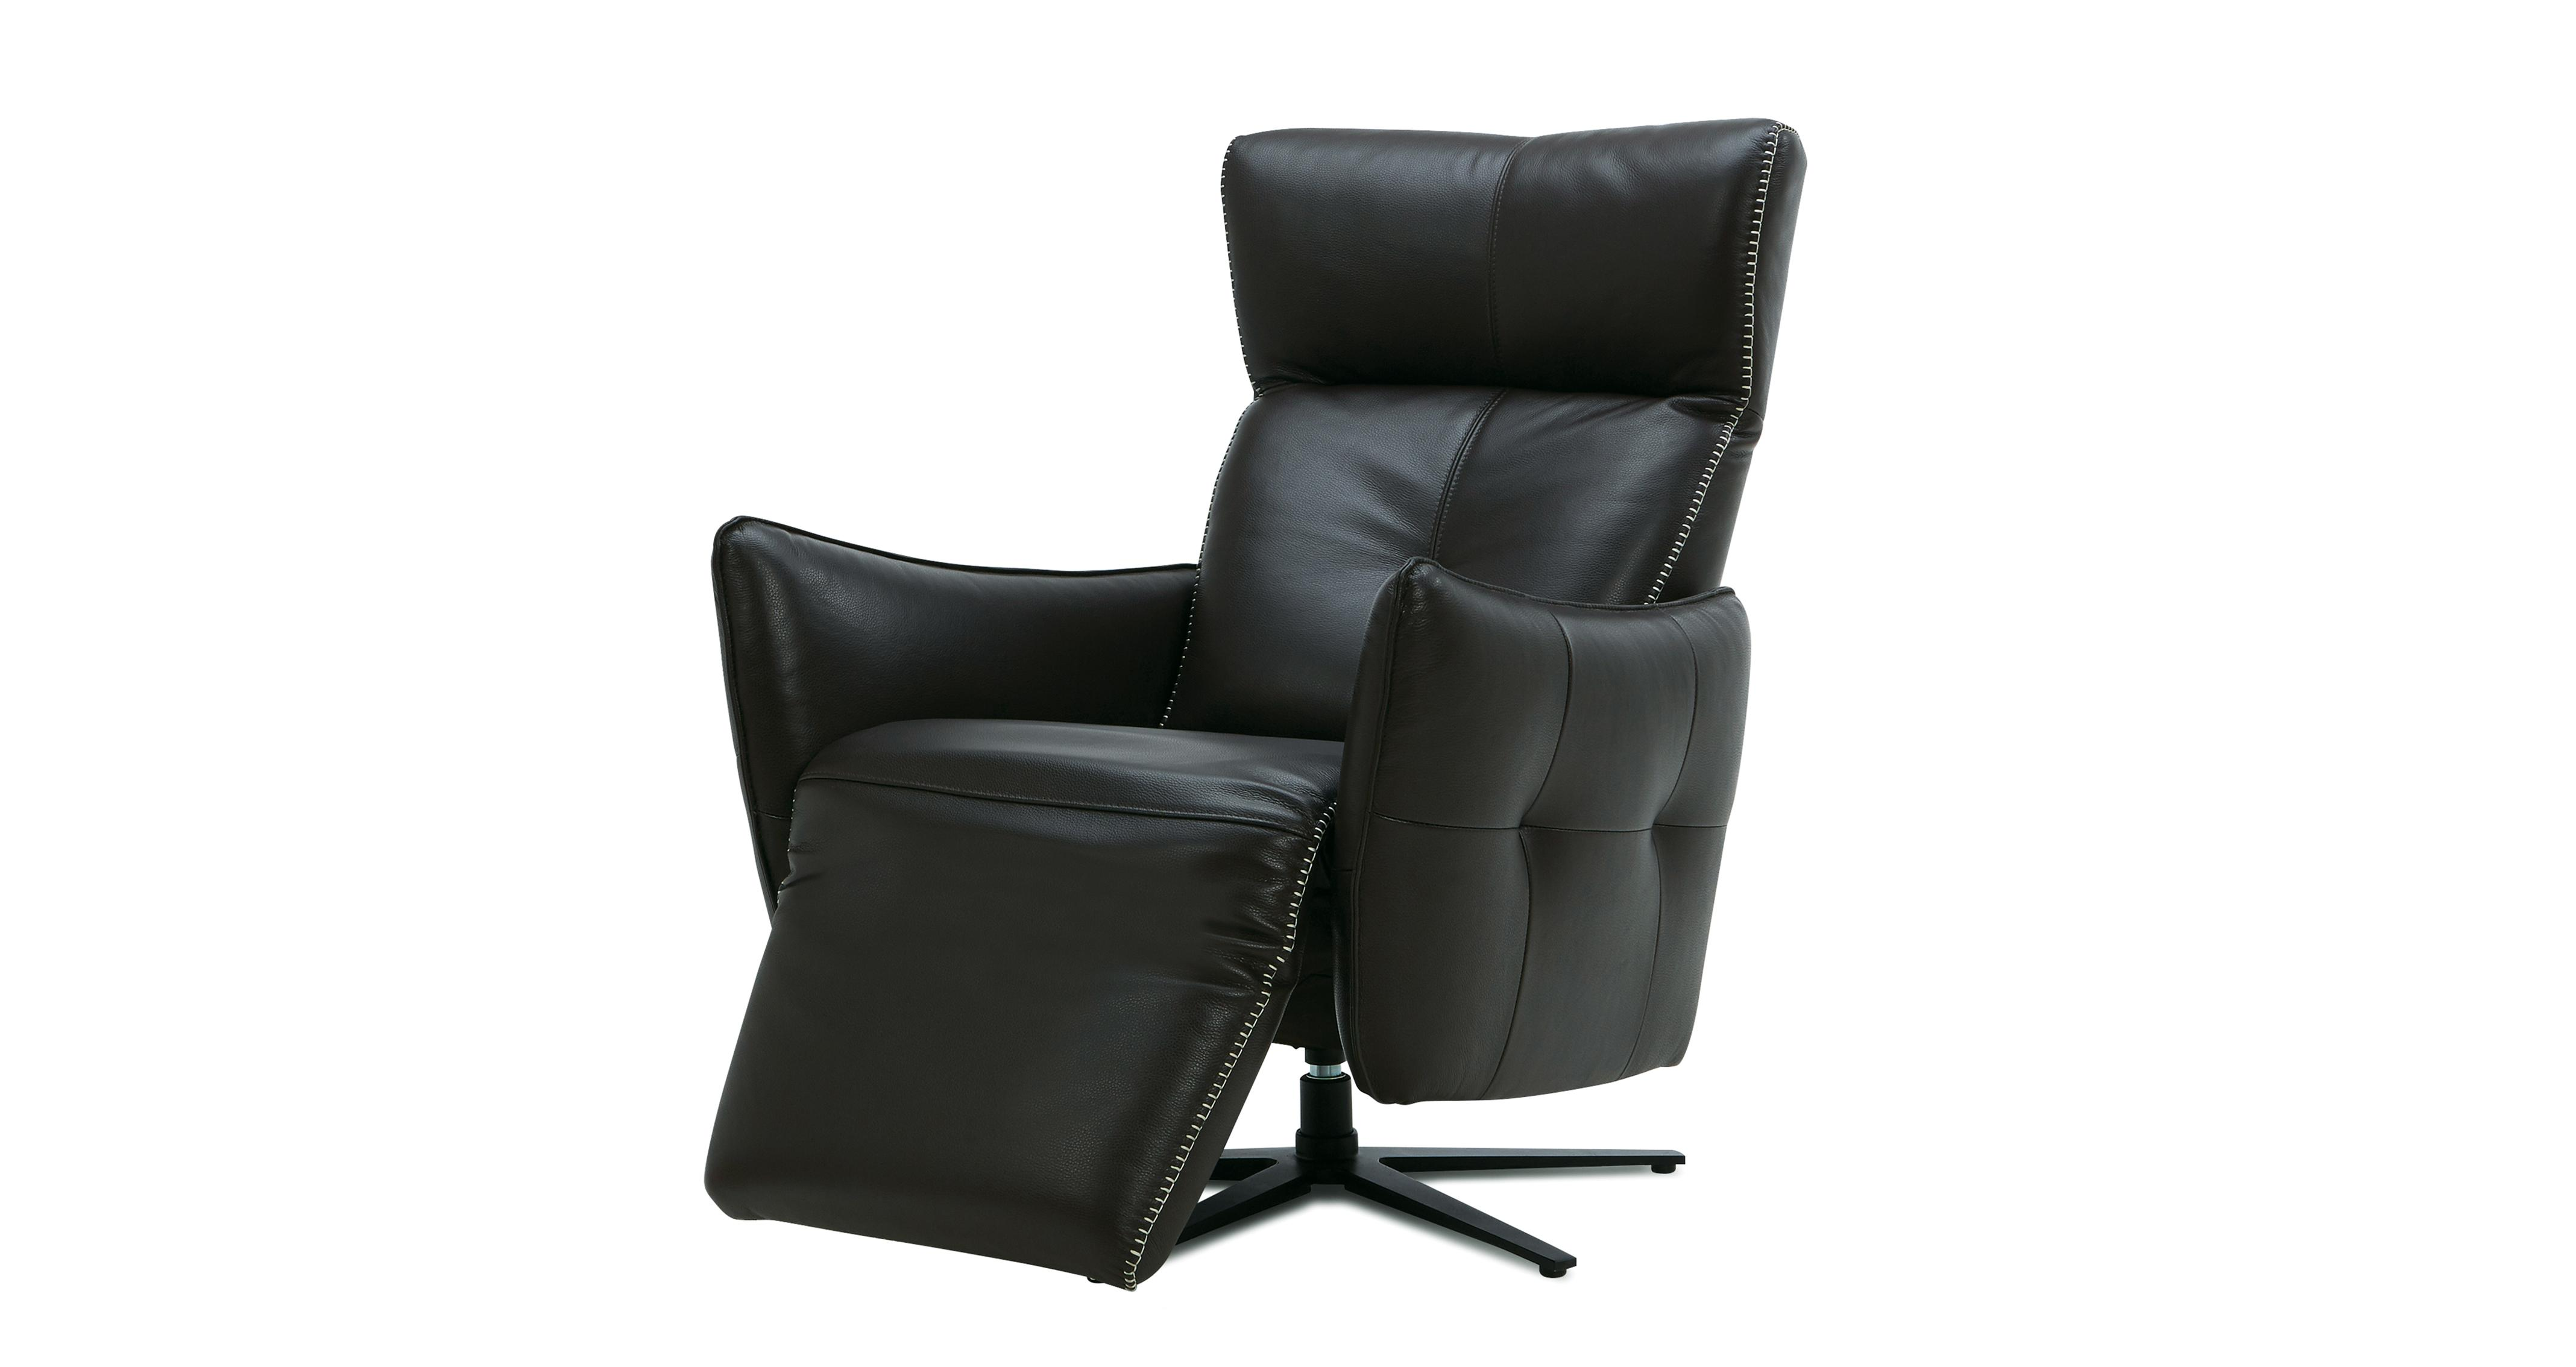 swivel reclining chairs small chair covers for wingback in styles including & recliners | dfs